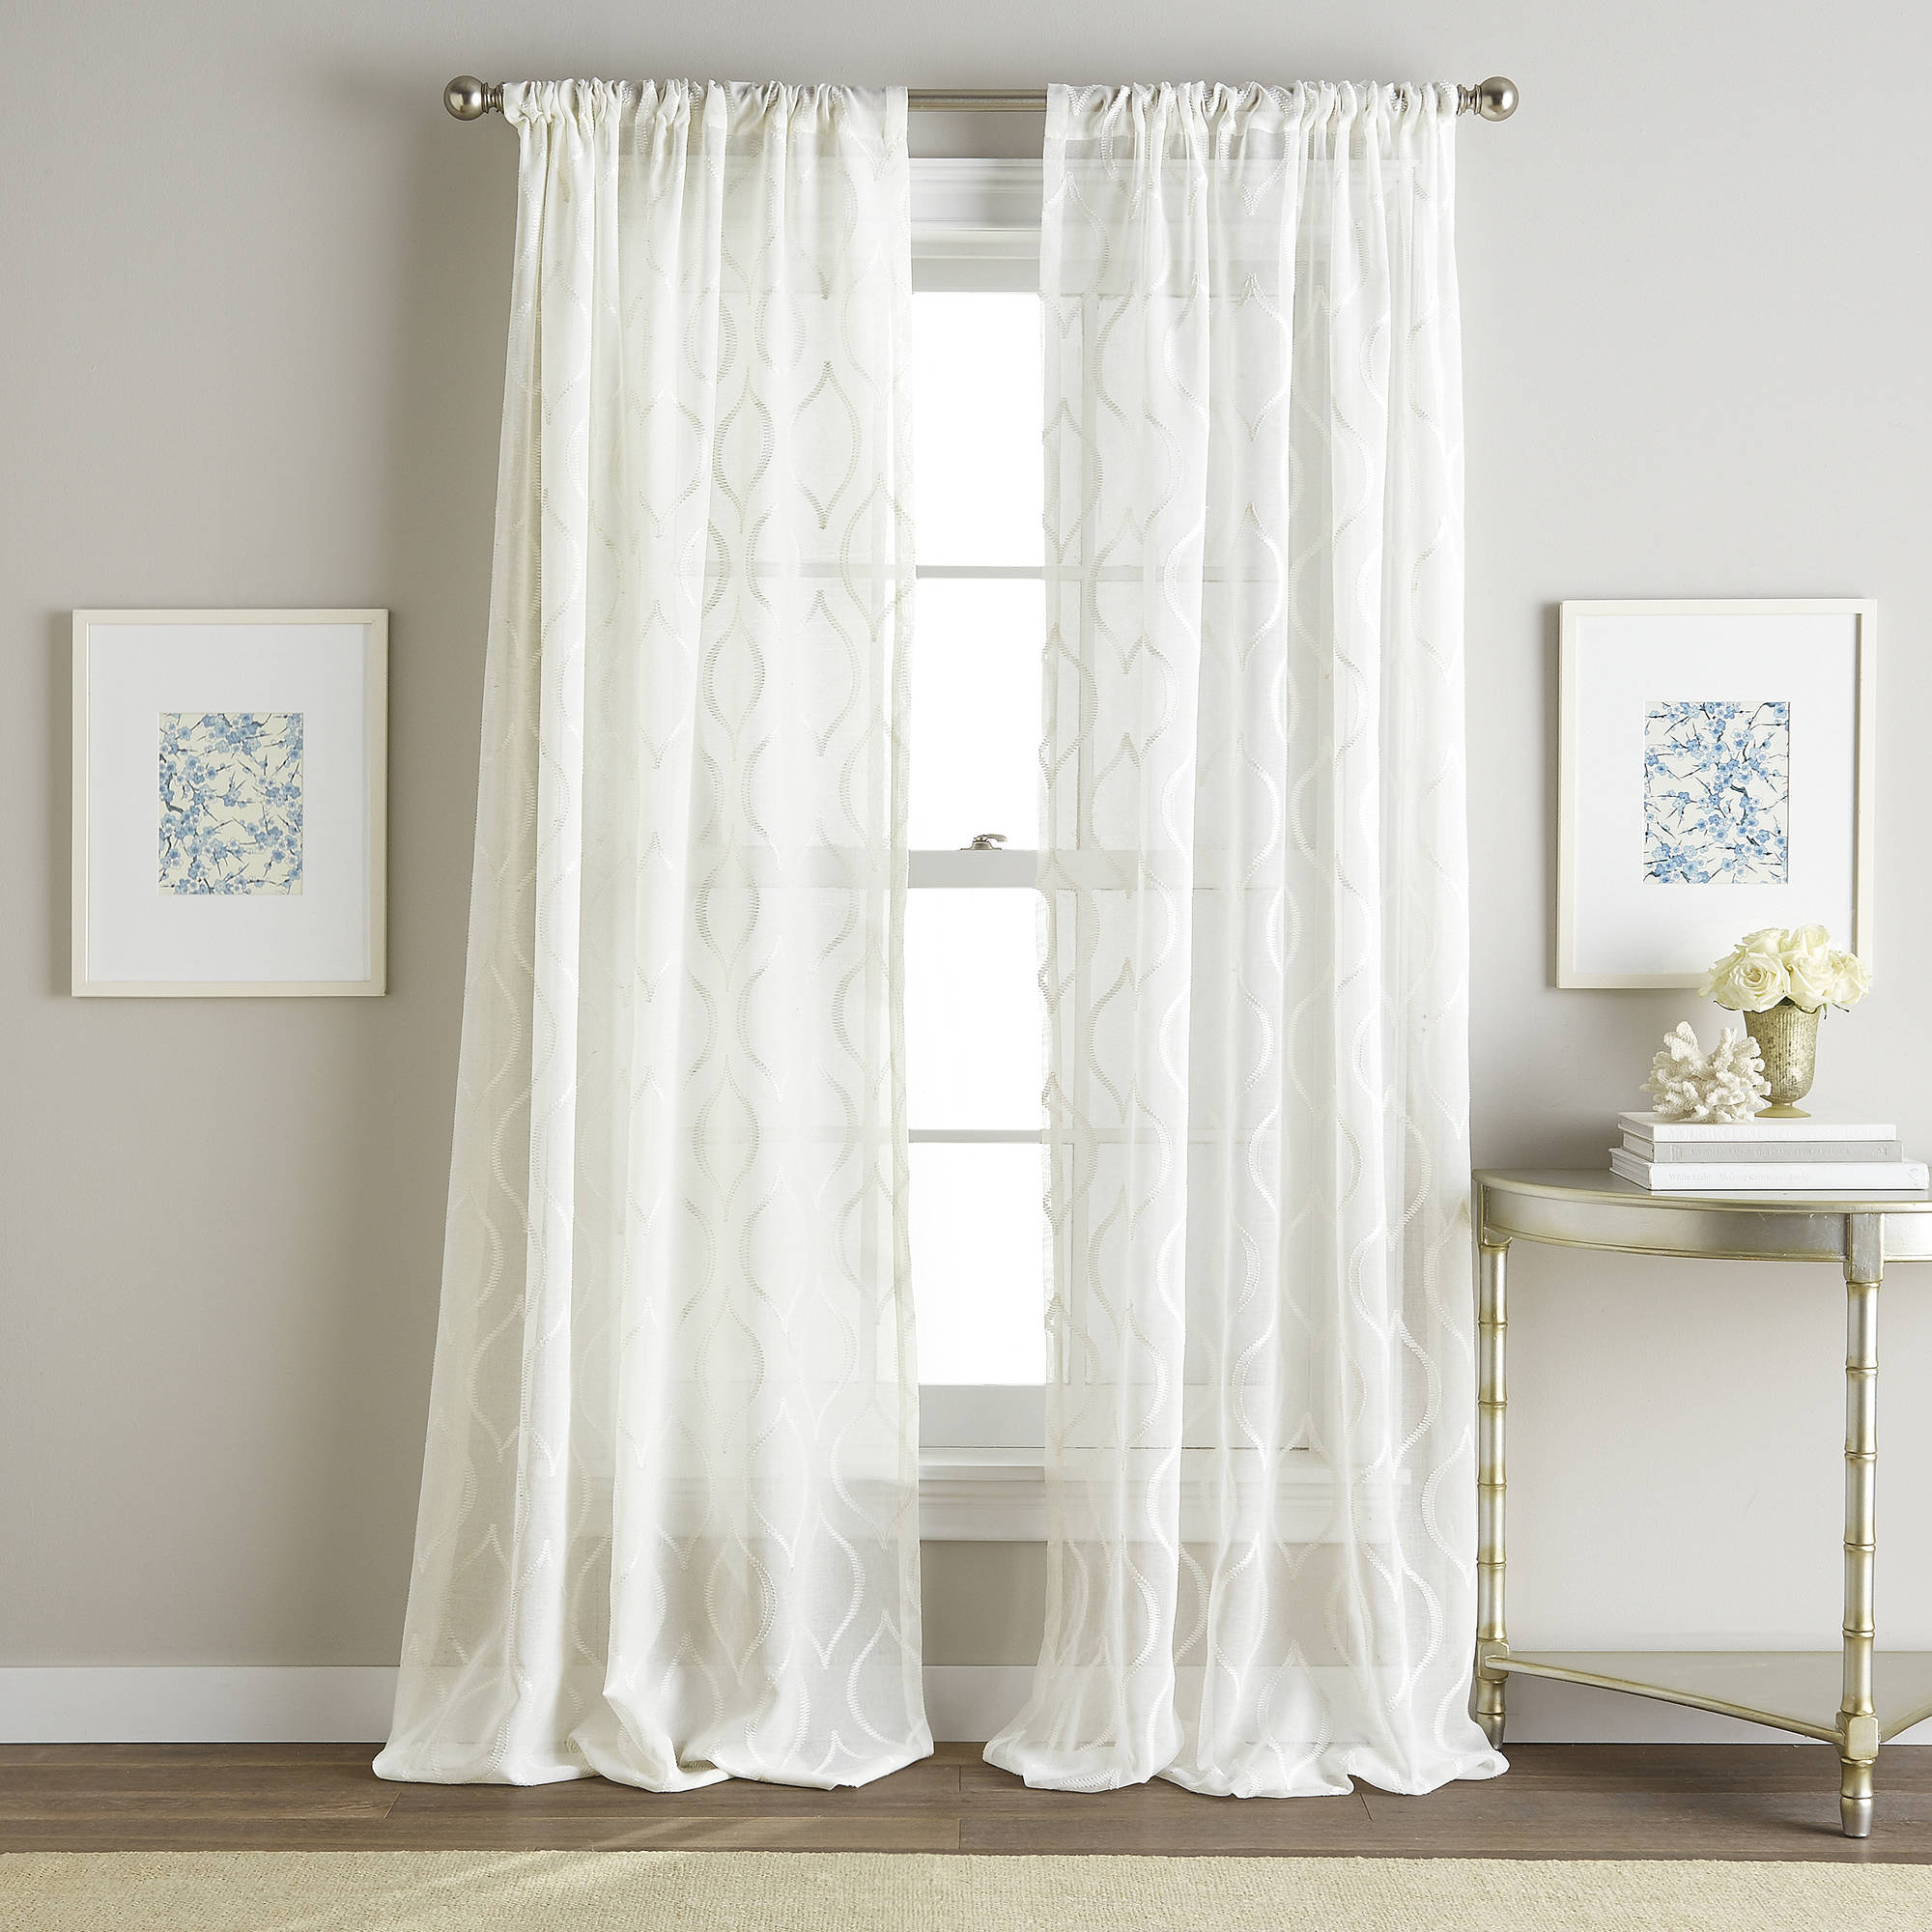 Hourglass Embroidery Poletop Sheer Curtain Panel Inside Kida Embroidered Sheer Curtain Panels (View 10 of 20)